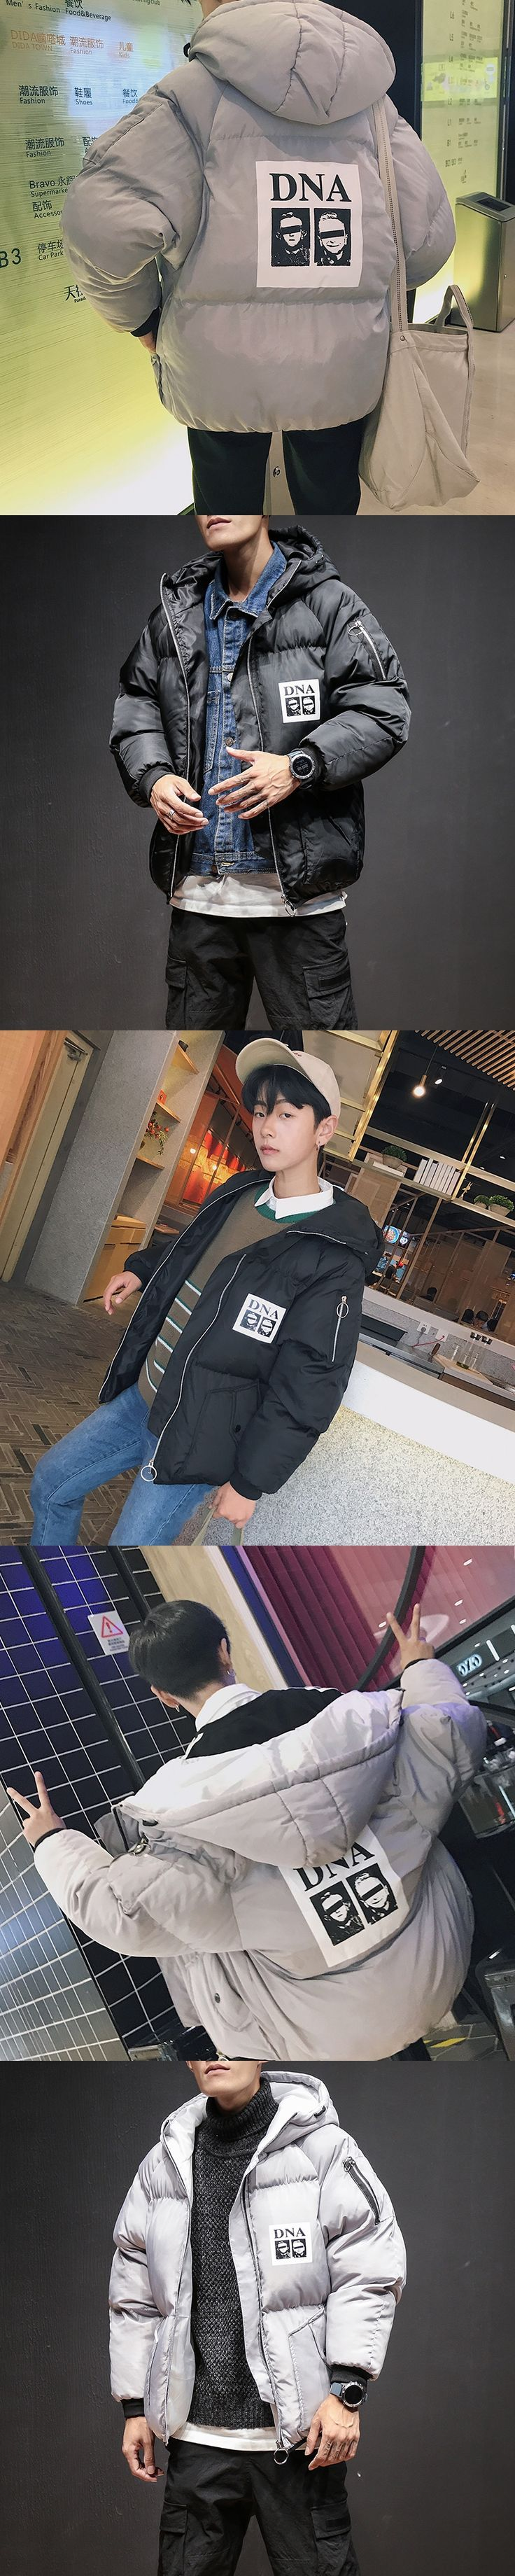 2017 Winter New Men's Snow Jackets Fashion Trend Thicken Cotton-padded Clothes Loose In Warm Coats Casual Brand Parka M-5XL